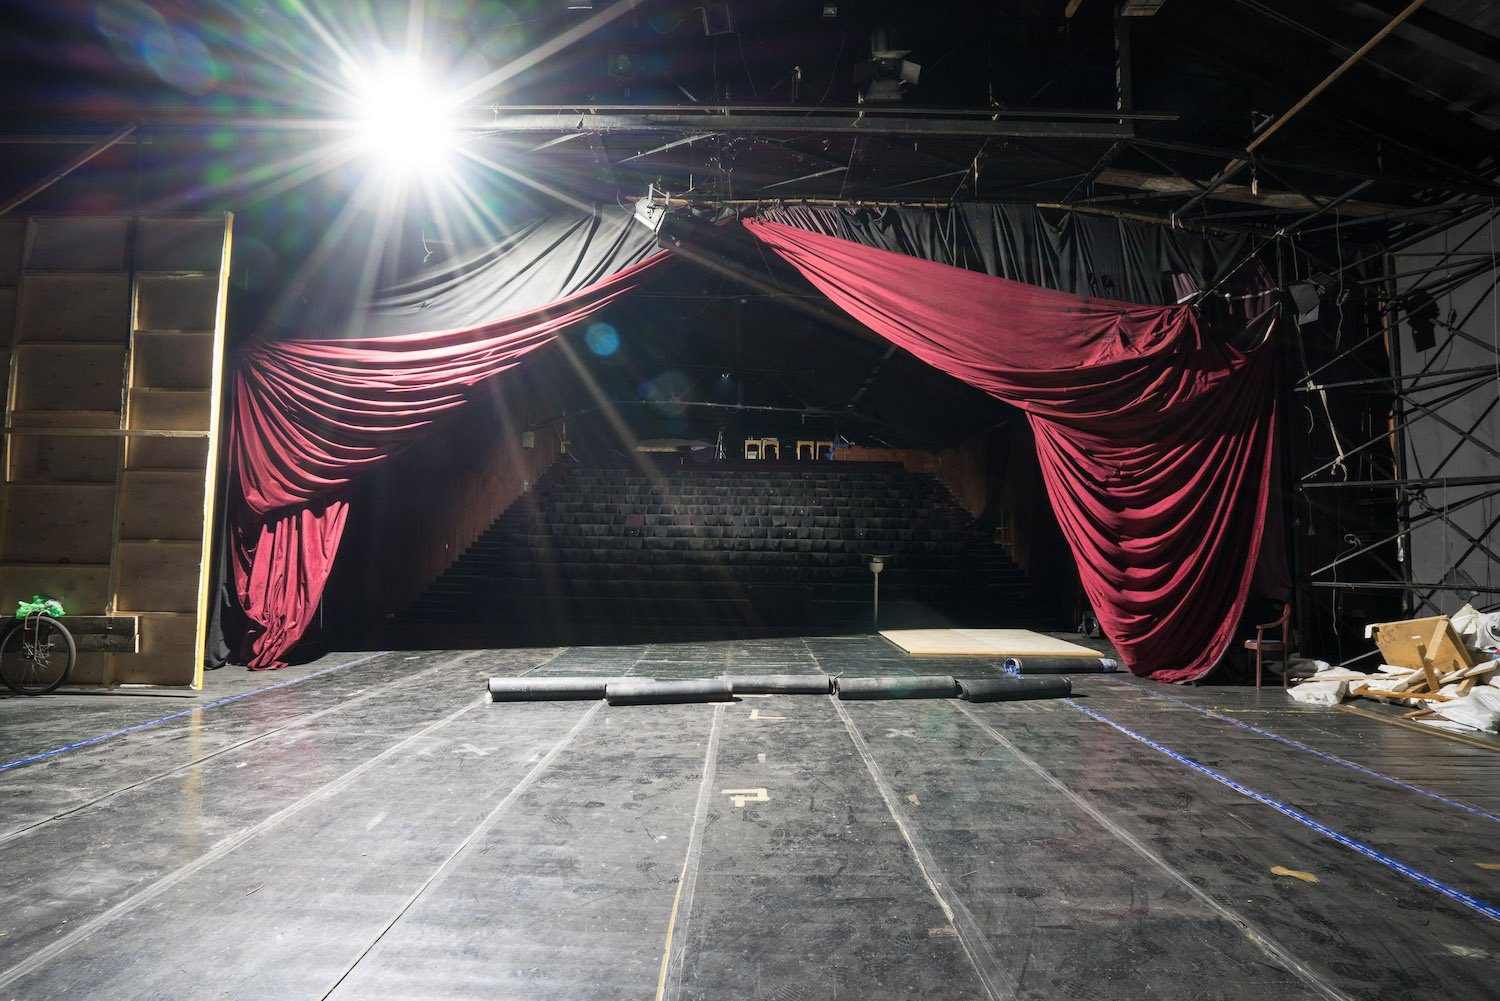 The stage at KPGT now lies dormant for months at a time